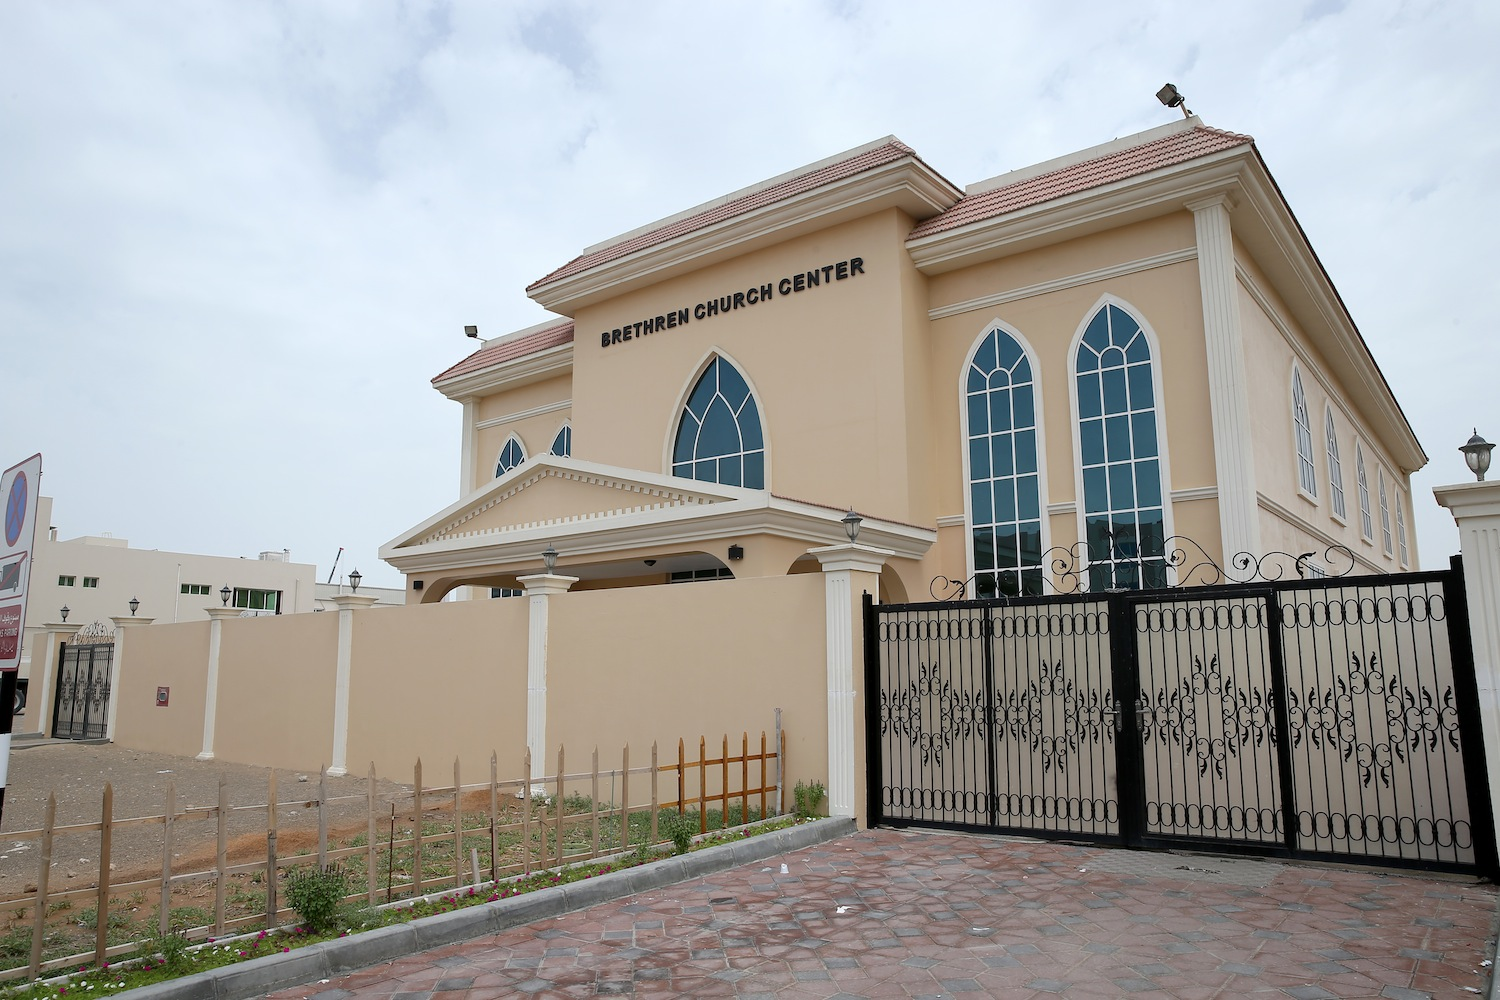 brethren-church-centre-abu-dhabi-6